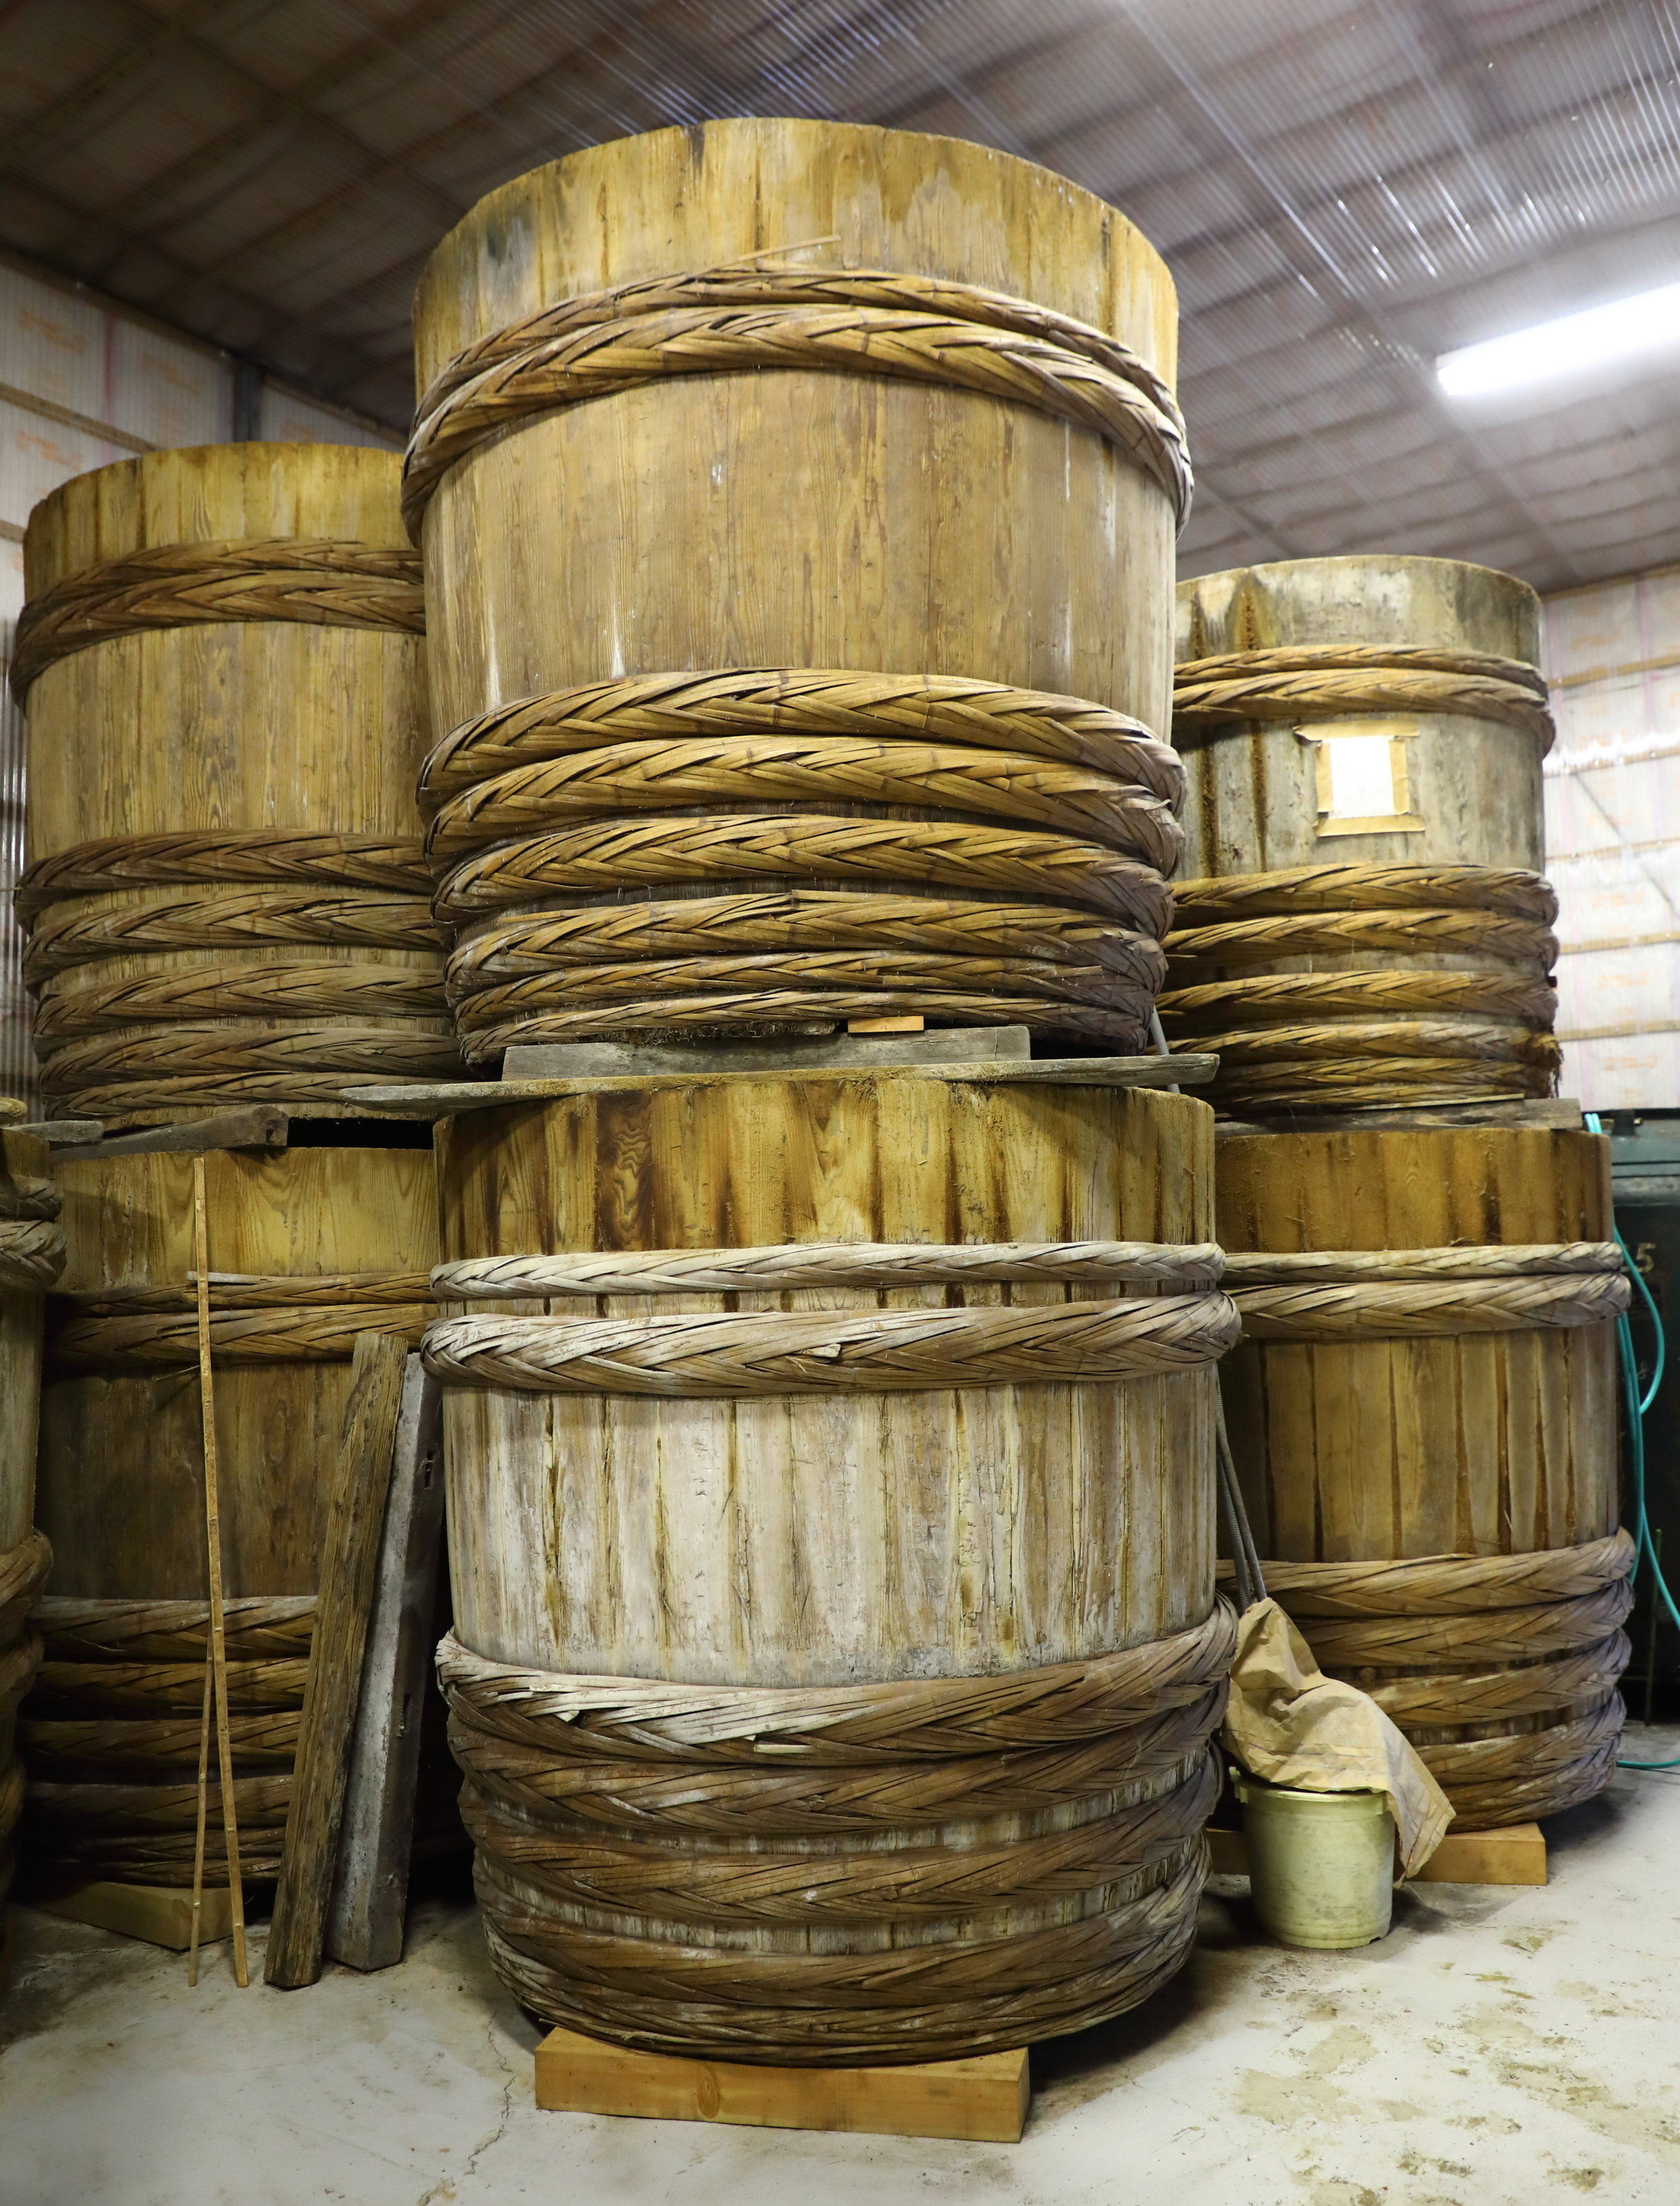 The wooden barrels in which Tanakaya ferments its soy sauce can be used for up to 200 years.